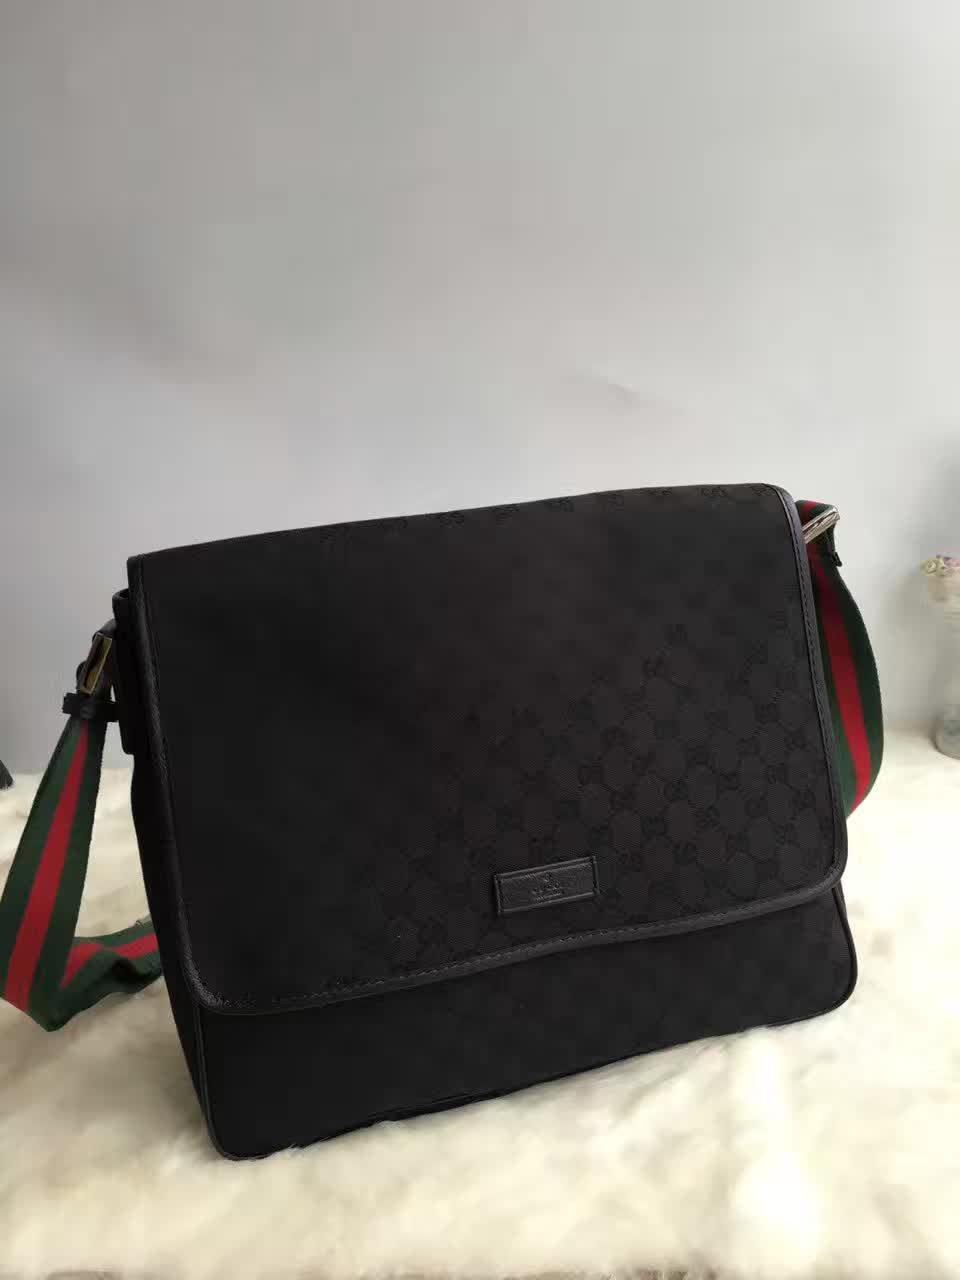 Gucci Bag Id 65552 Forsale A Yybags Com Gucci Leather Backpack Gucci In Melbourne Gucci Cheap Purses Fashion Gucci First Name Gucci H Leather Hobo Bags Gucci Mens Wallet Wallets For Women Leather